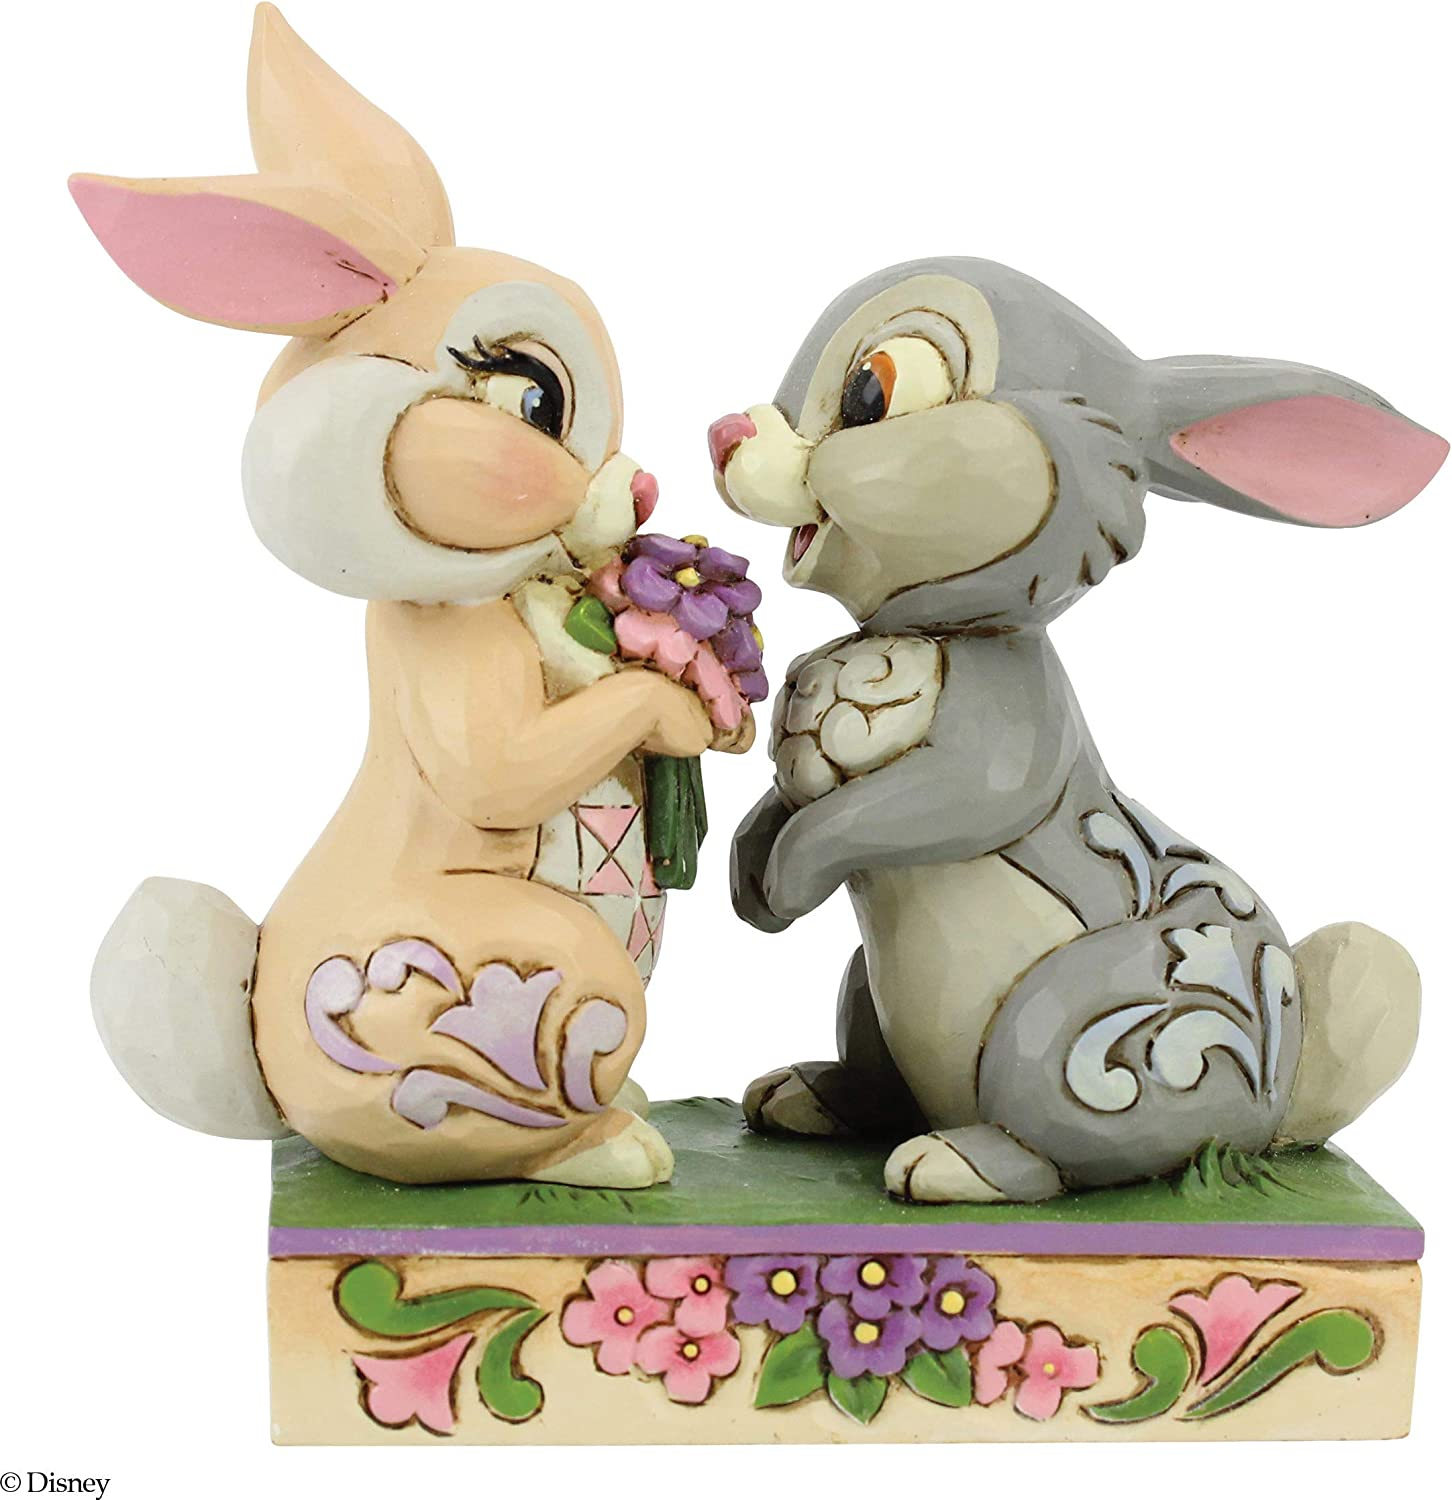 Enesco Disney Traditions by Jim Shore Thumper and Blossom Snuggling Figurine